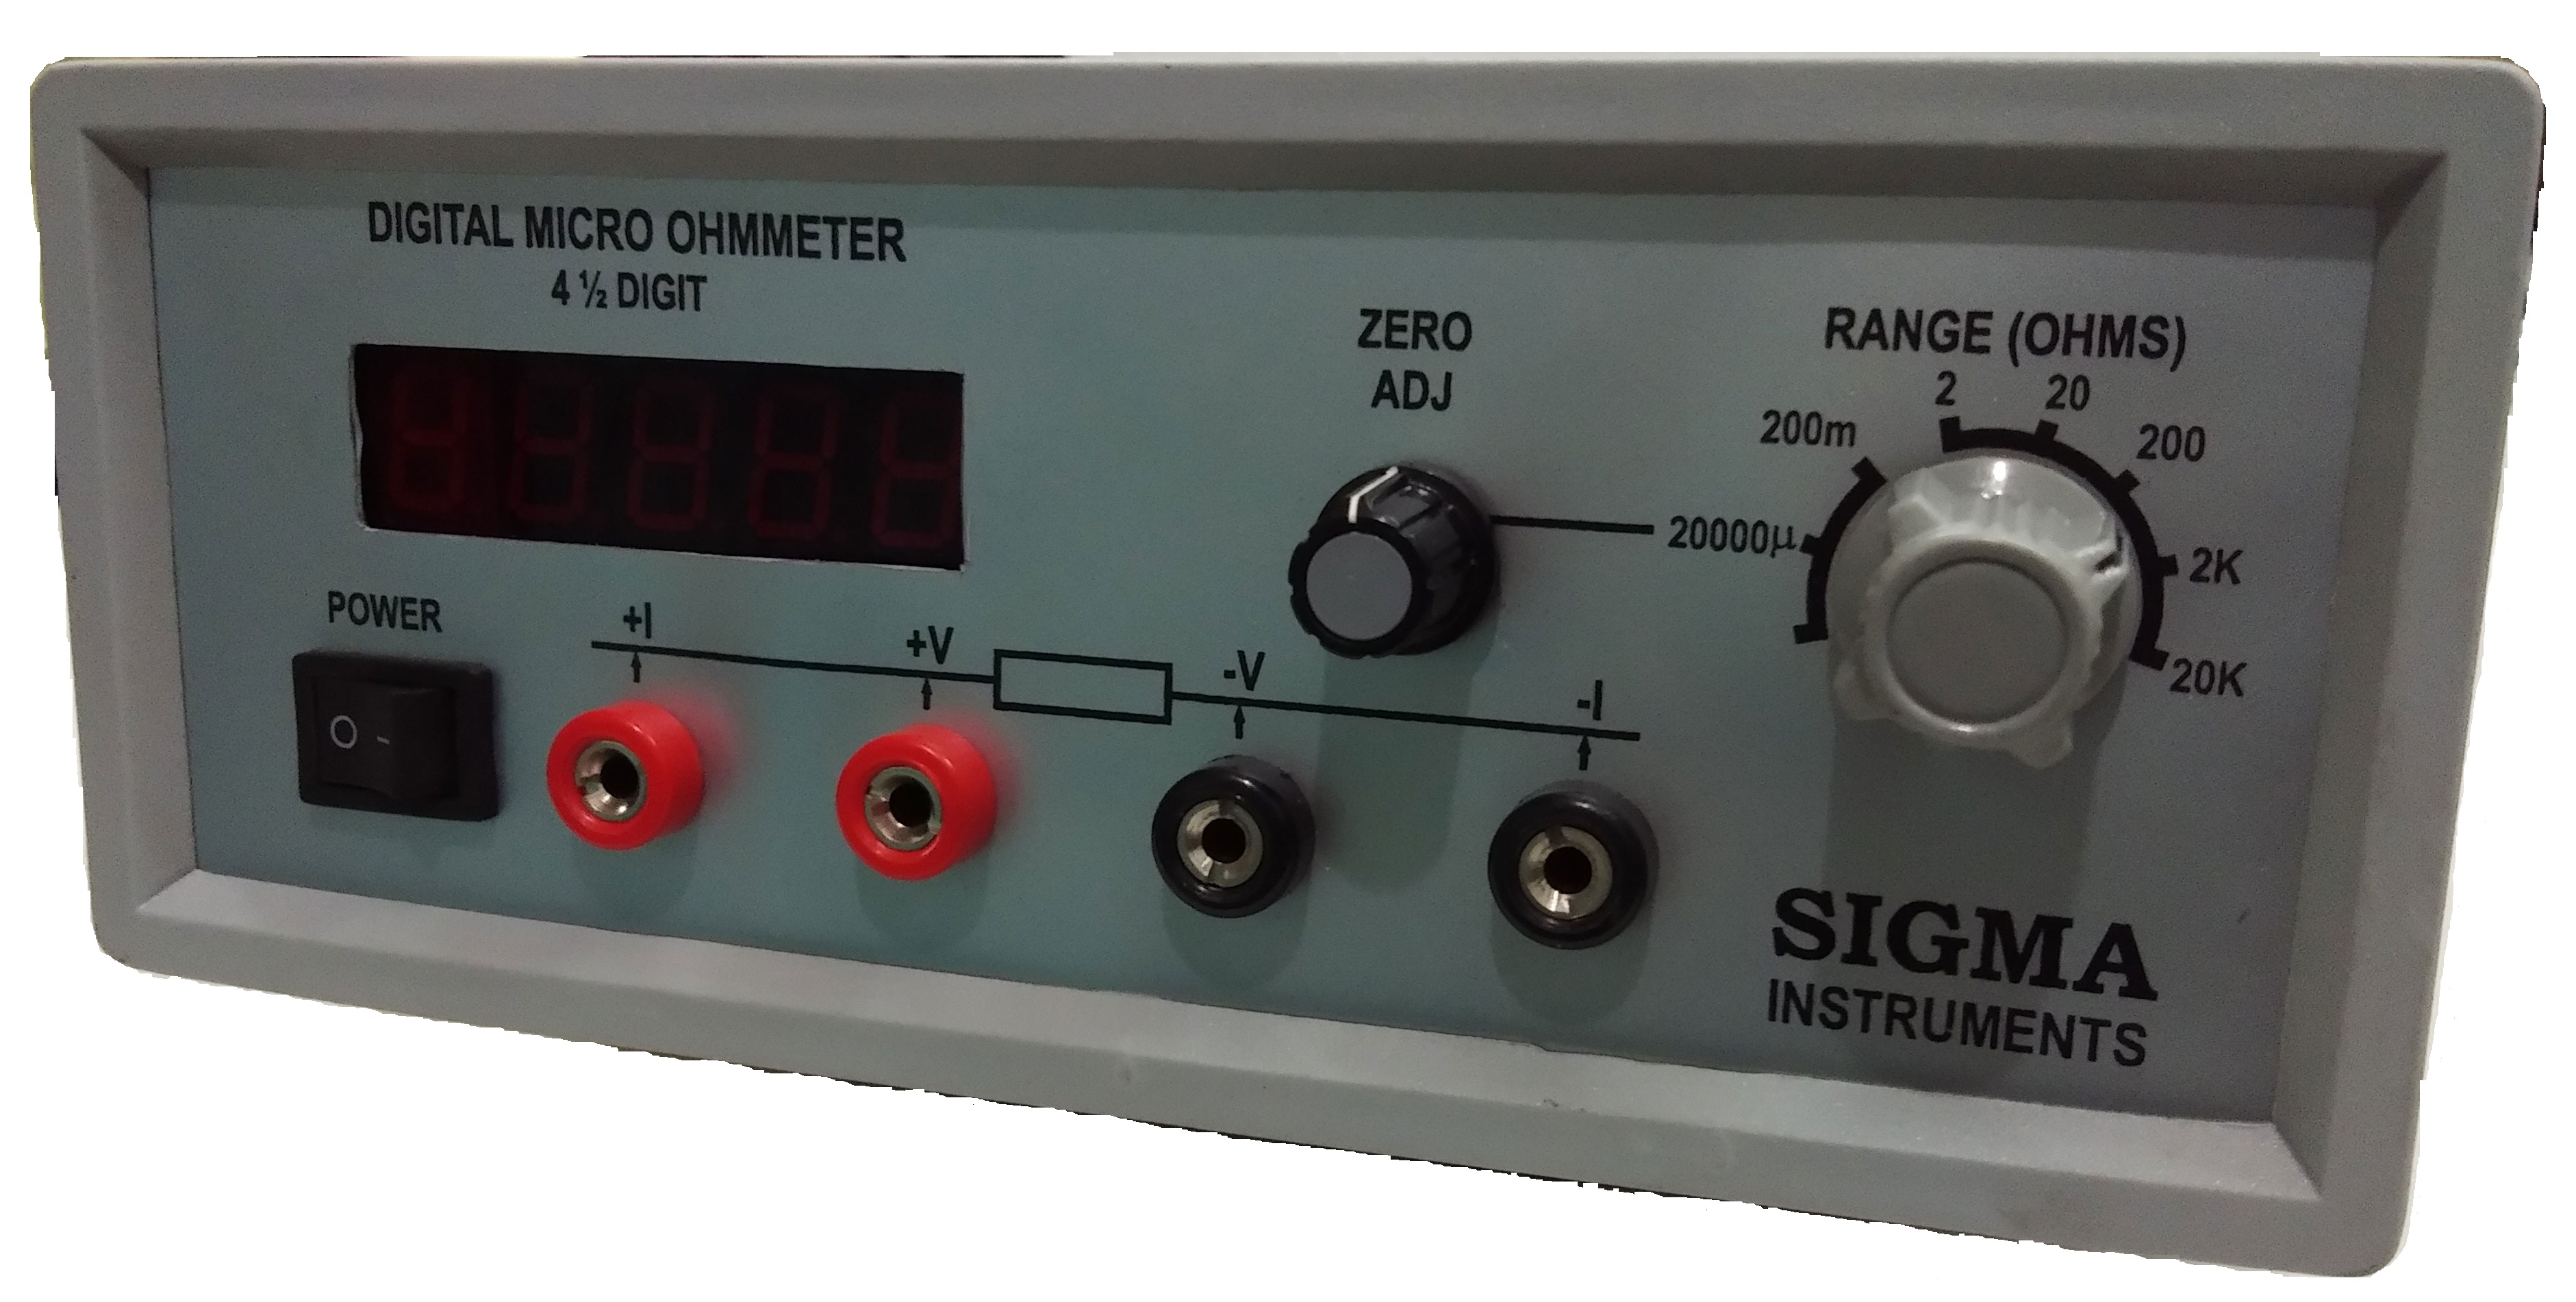 Digital Ohm Meter : Digital micro ohm meter quot sigma digit